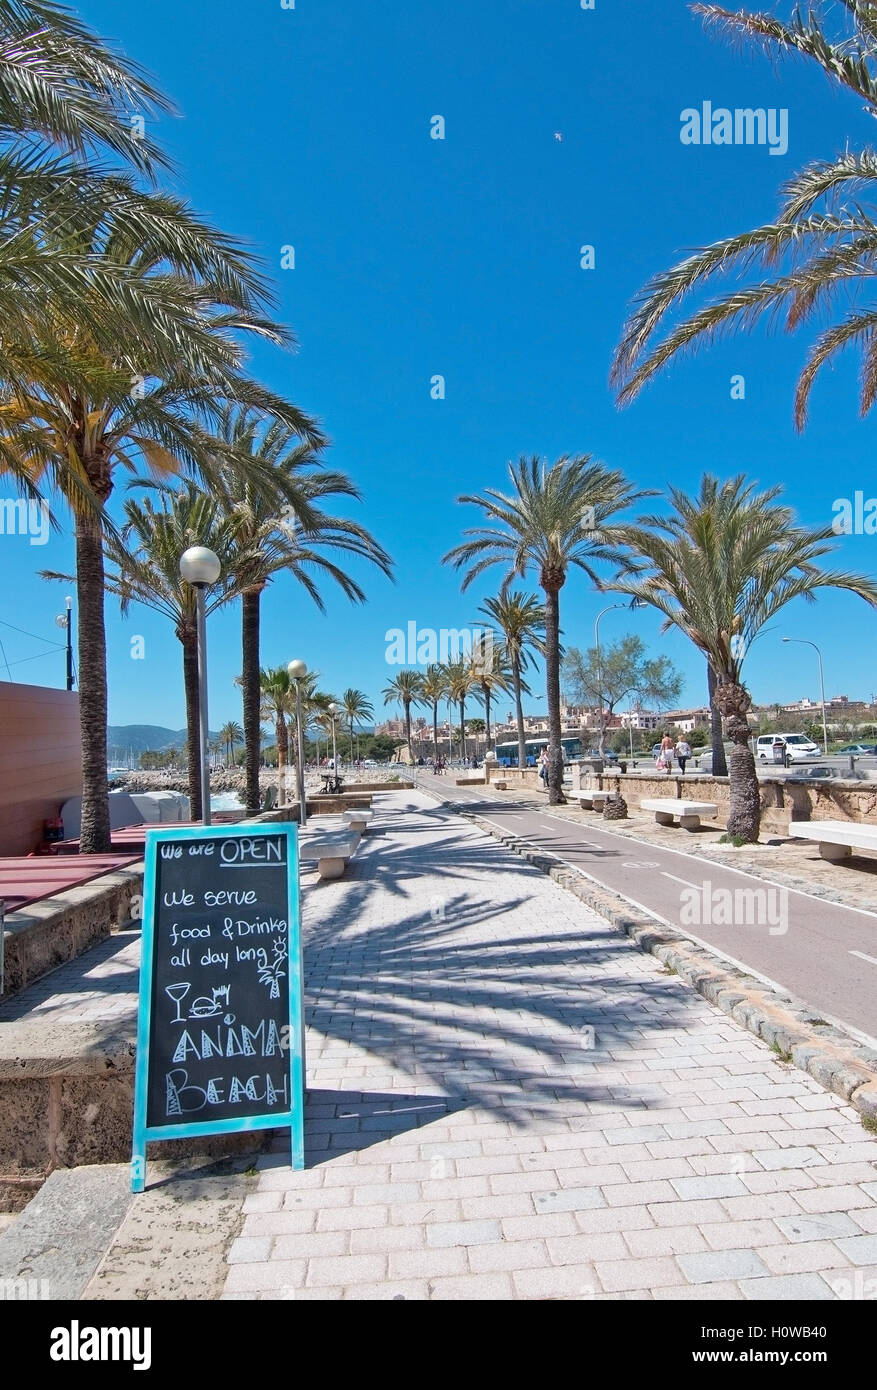 Anima beach bar entrance next to bicycle route in Palma de Mallorca, Balearic islands, Spain on April 10, 2016. - Stock Image